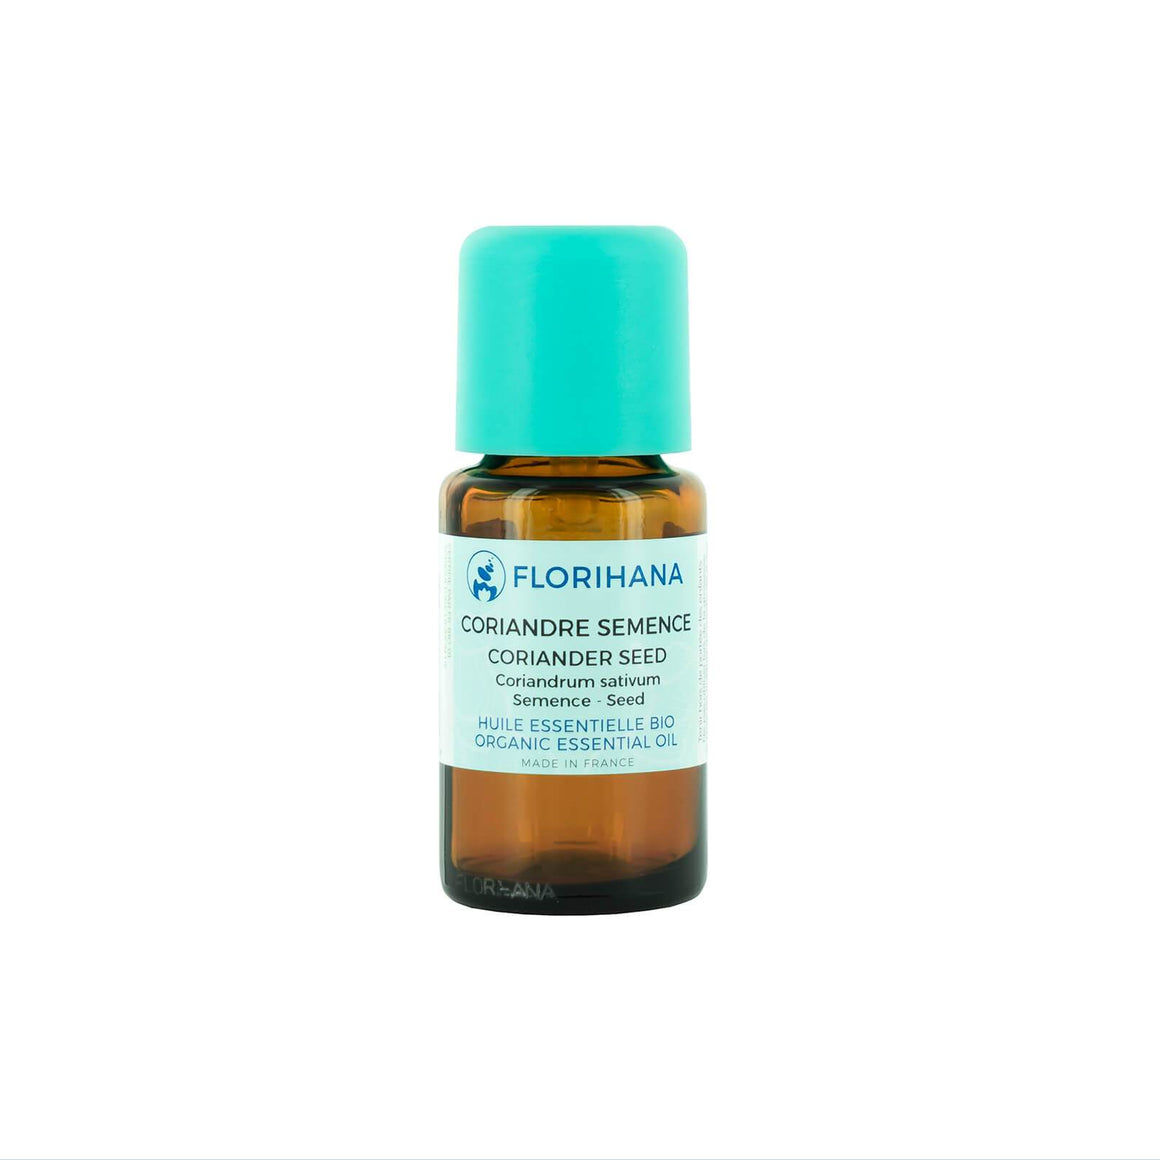 Coriander Seed Essential Oil | Organic | 5g (5.8ml) - Petal and Stem